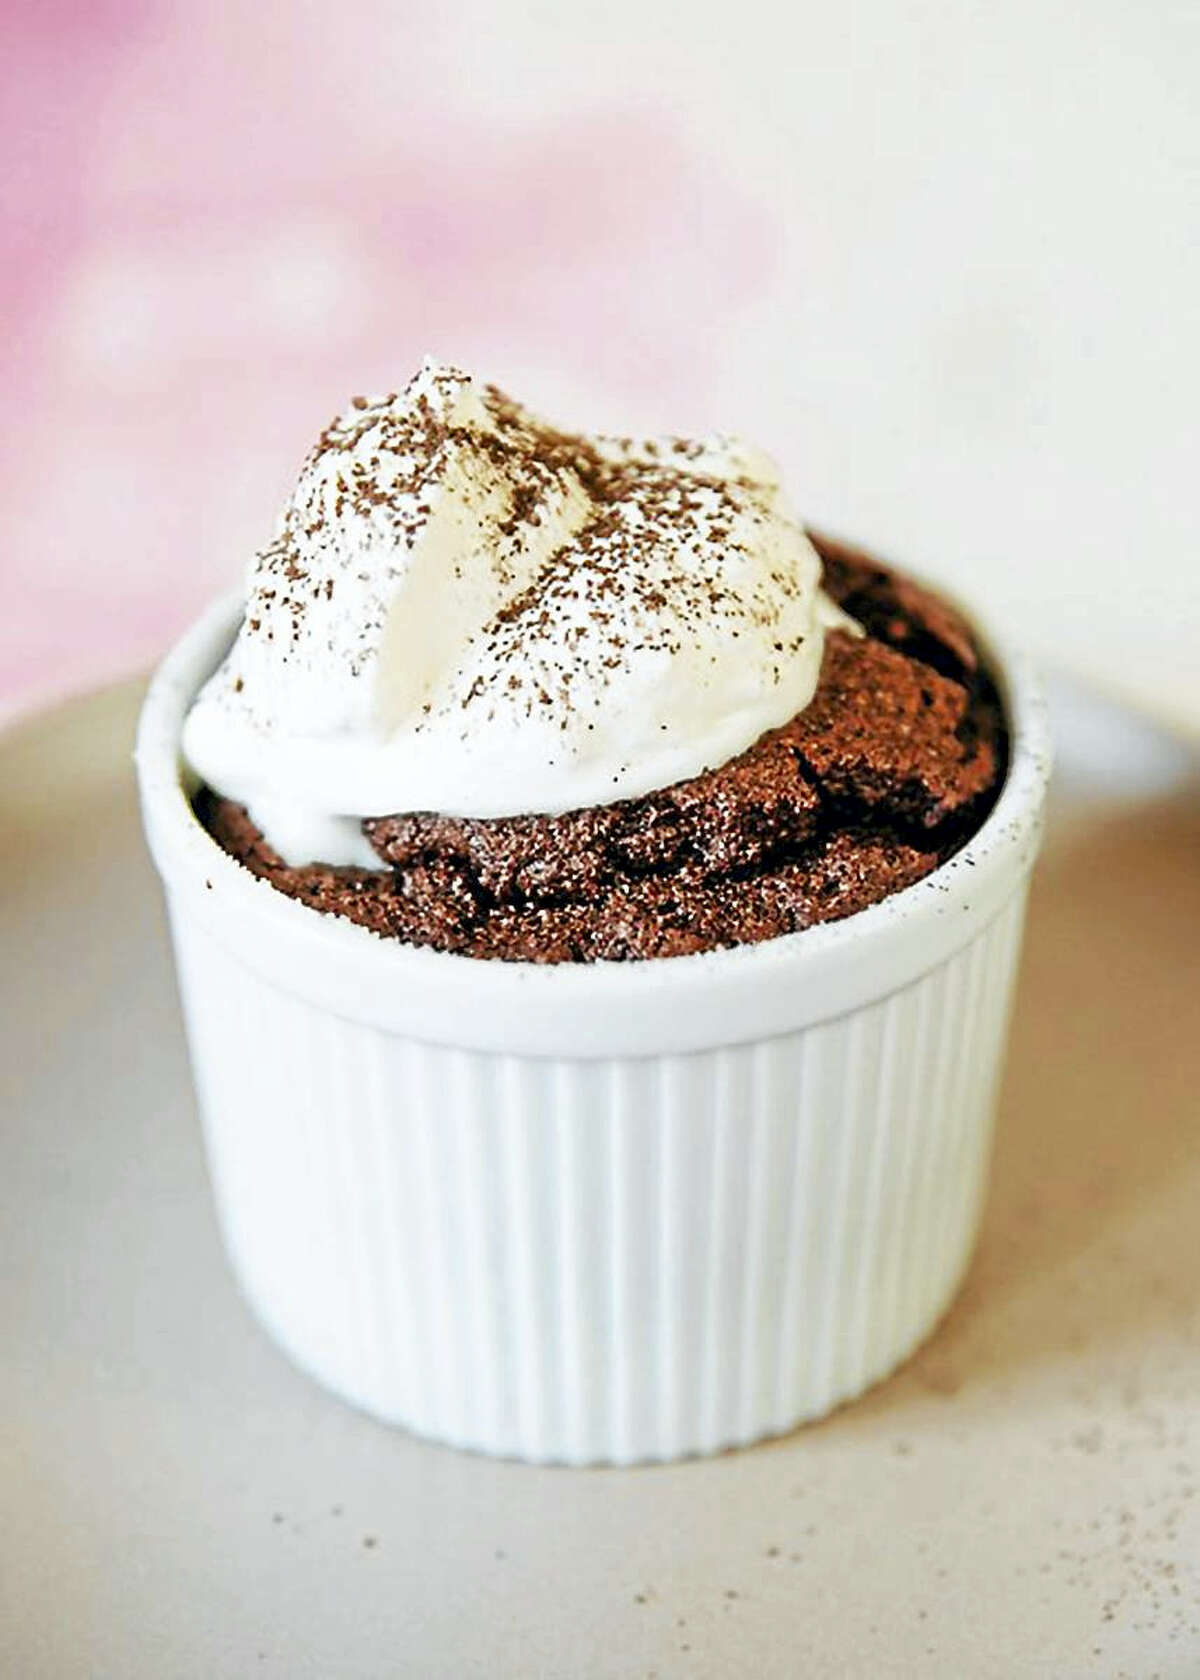 While there's no need to rush to the table, souffles are best when served warm.